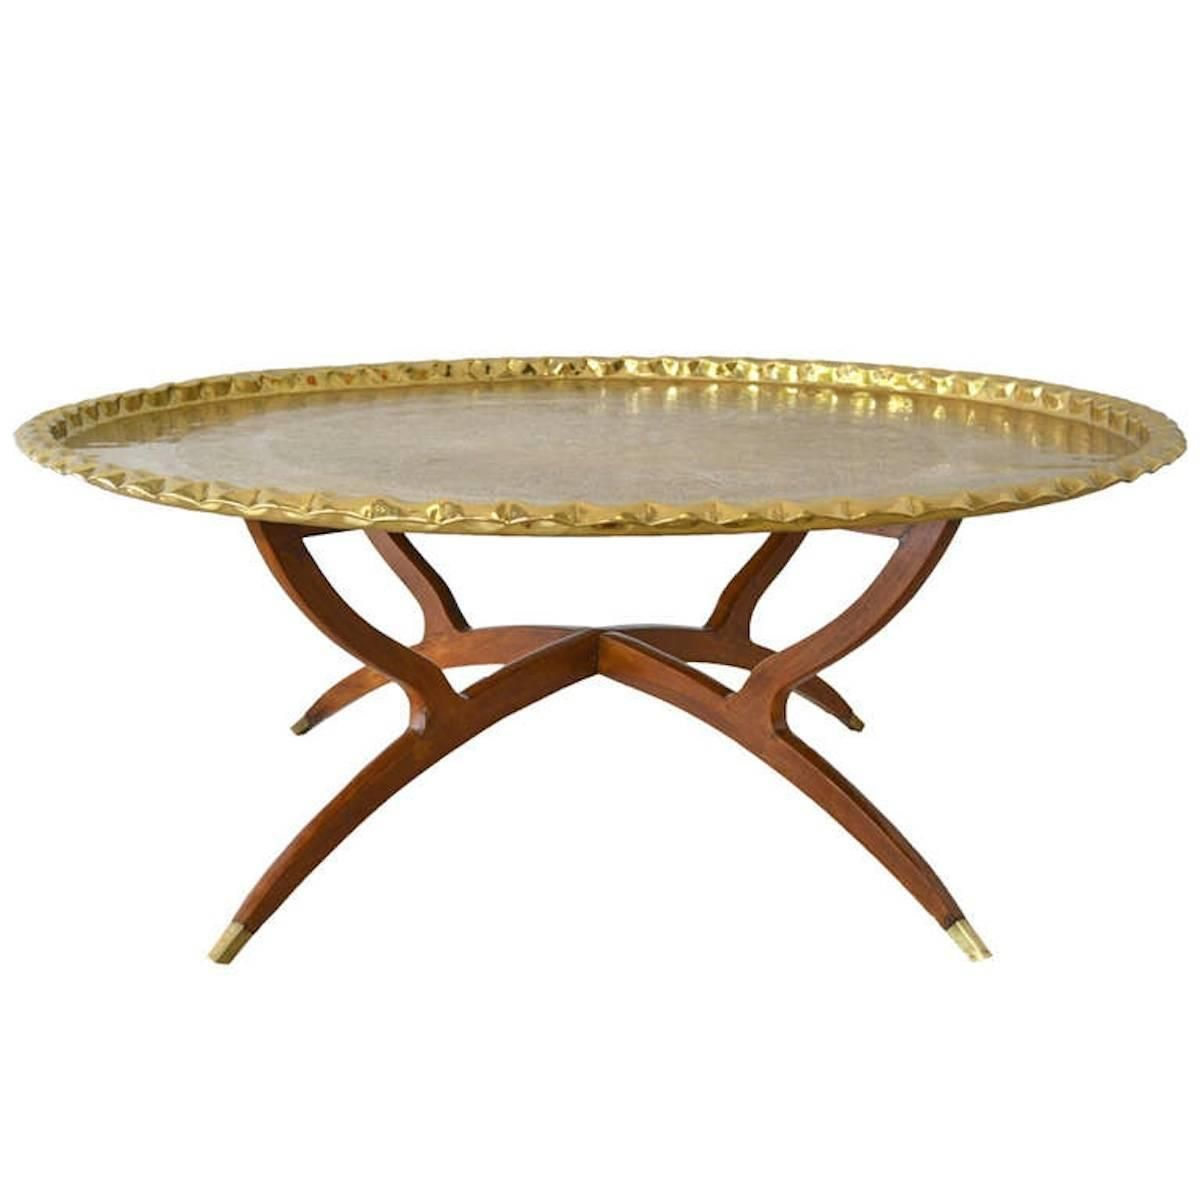 46 Oval Moroccan Brass Tray Table Antique Turkish Ottoman Empire